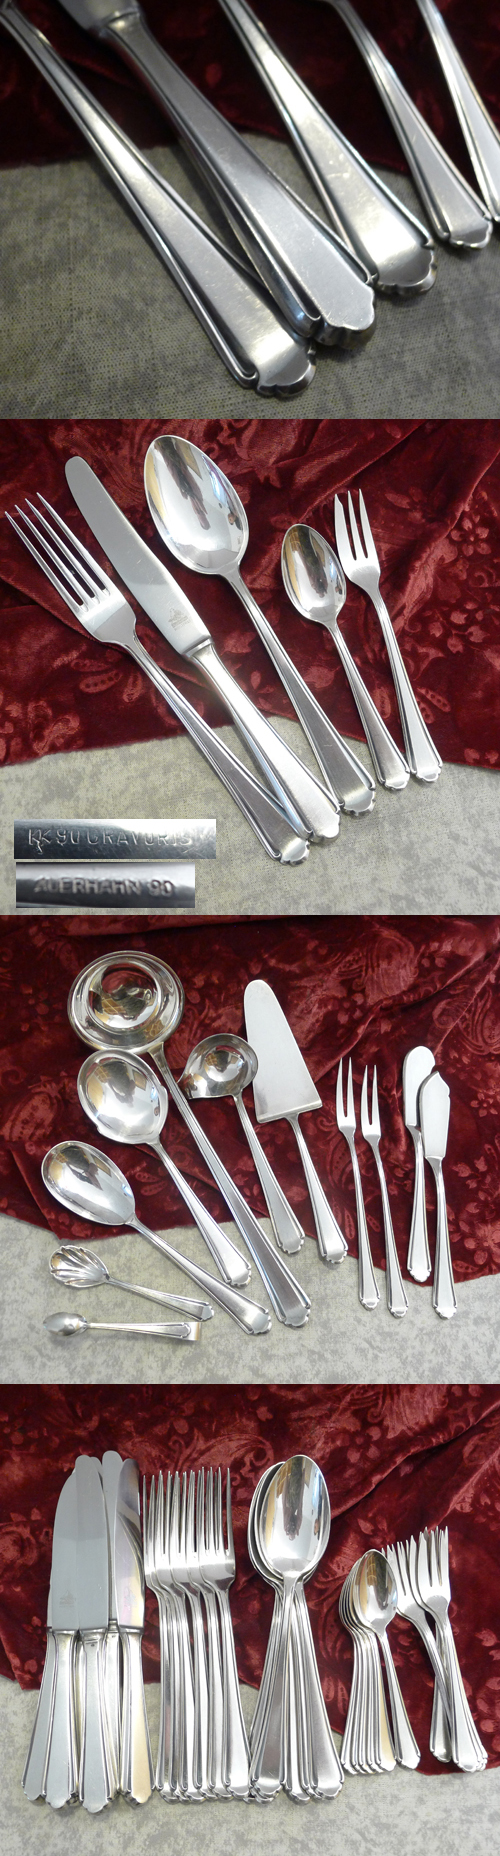 Auerhahn 6 Persons Flatware + Serving Cutlery Set 90 silverplate